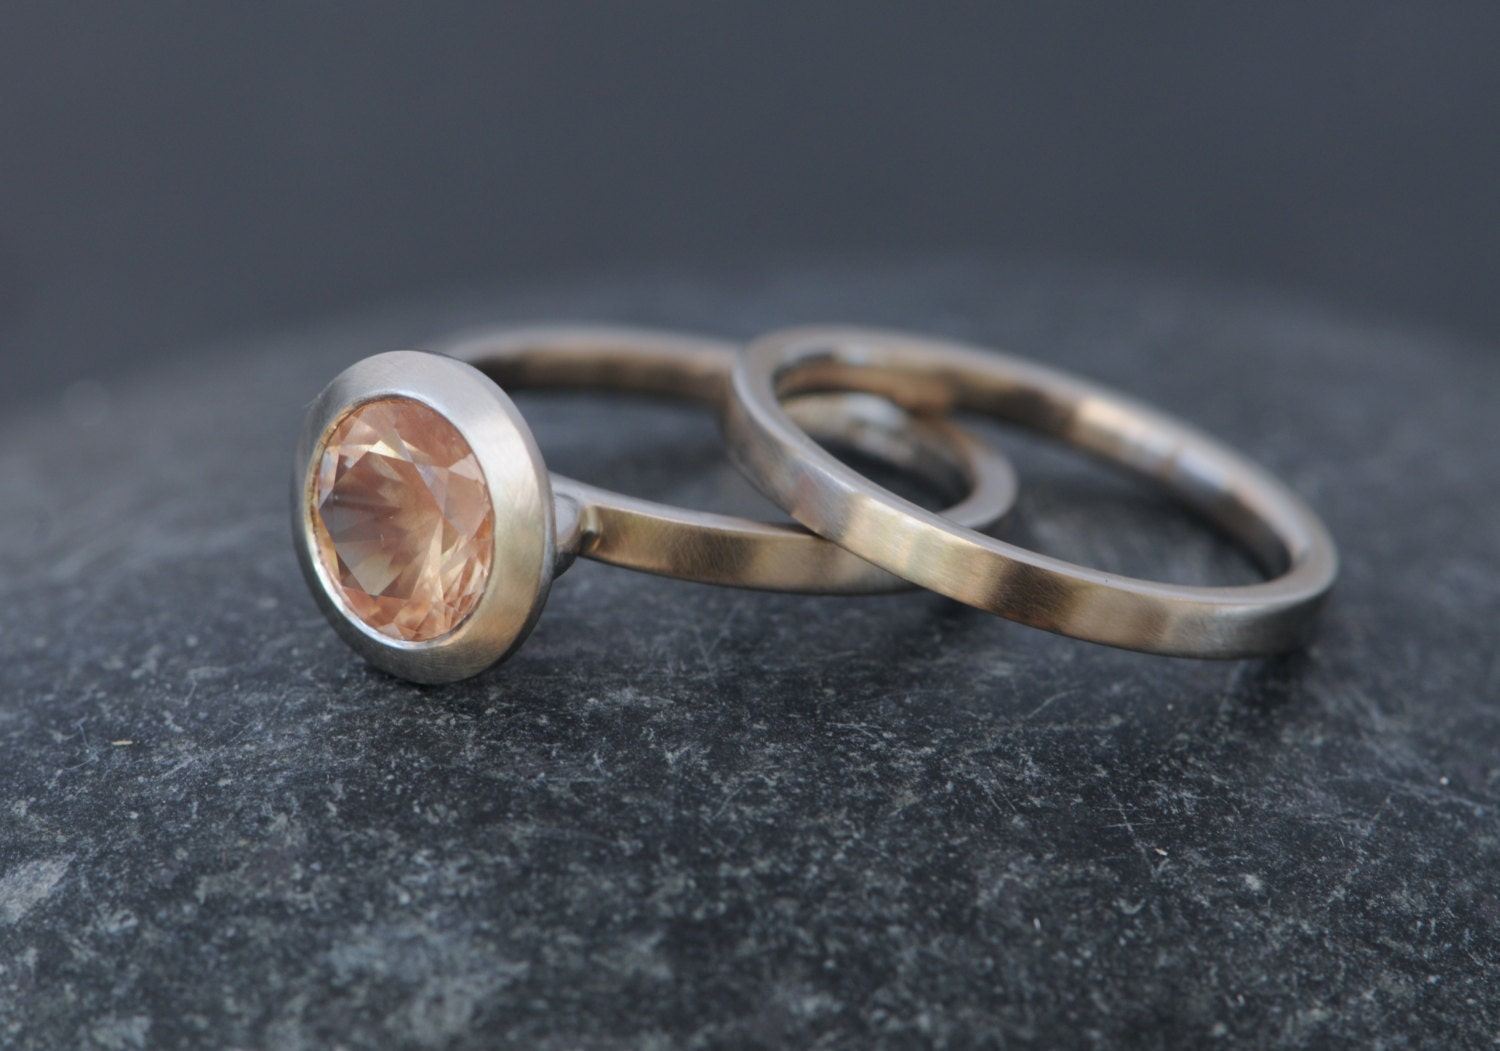 wedding cassin and bands engagement blog stone sun rings rose gold sunstone band featured oregon matching madelynn designs halo